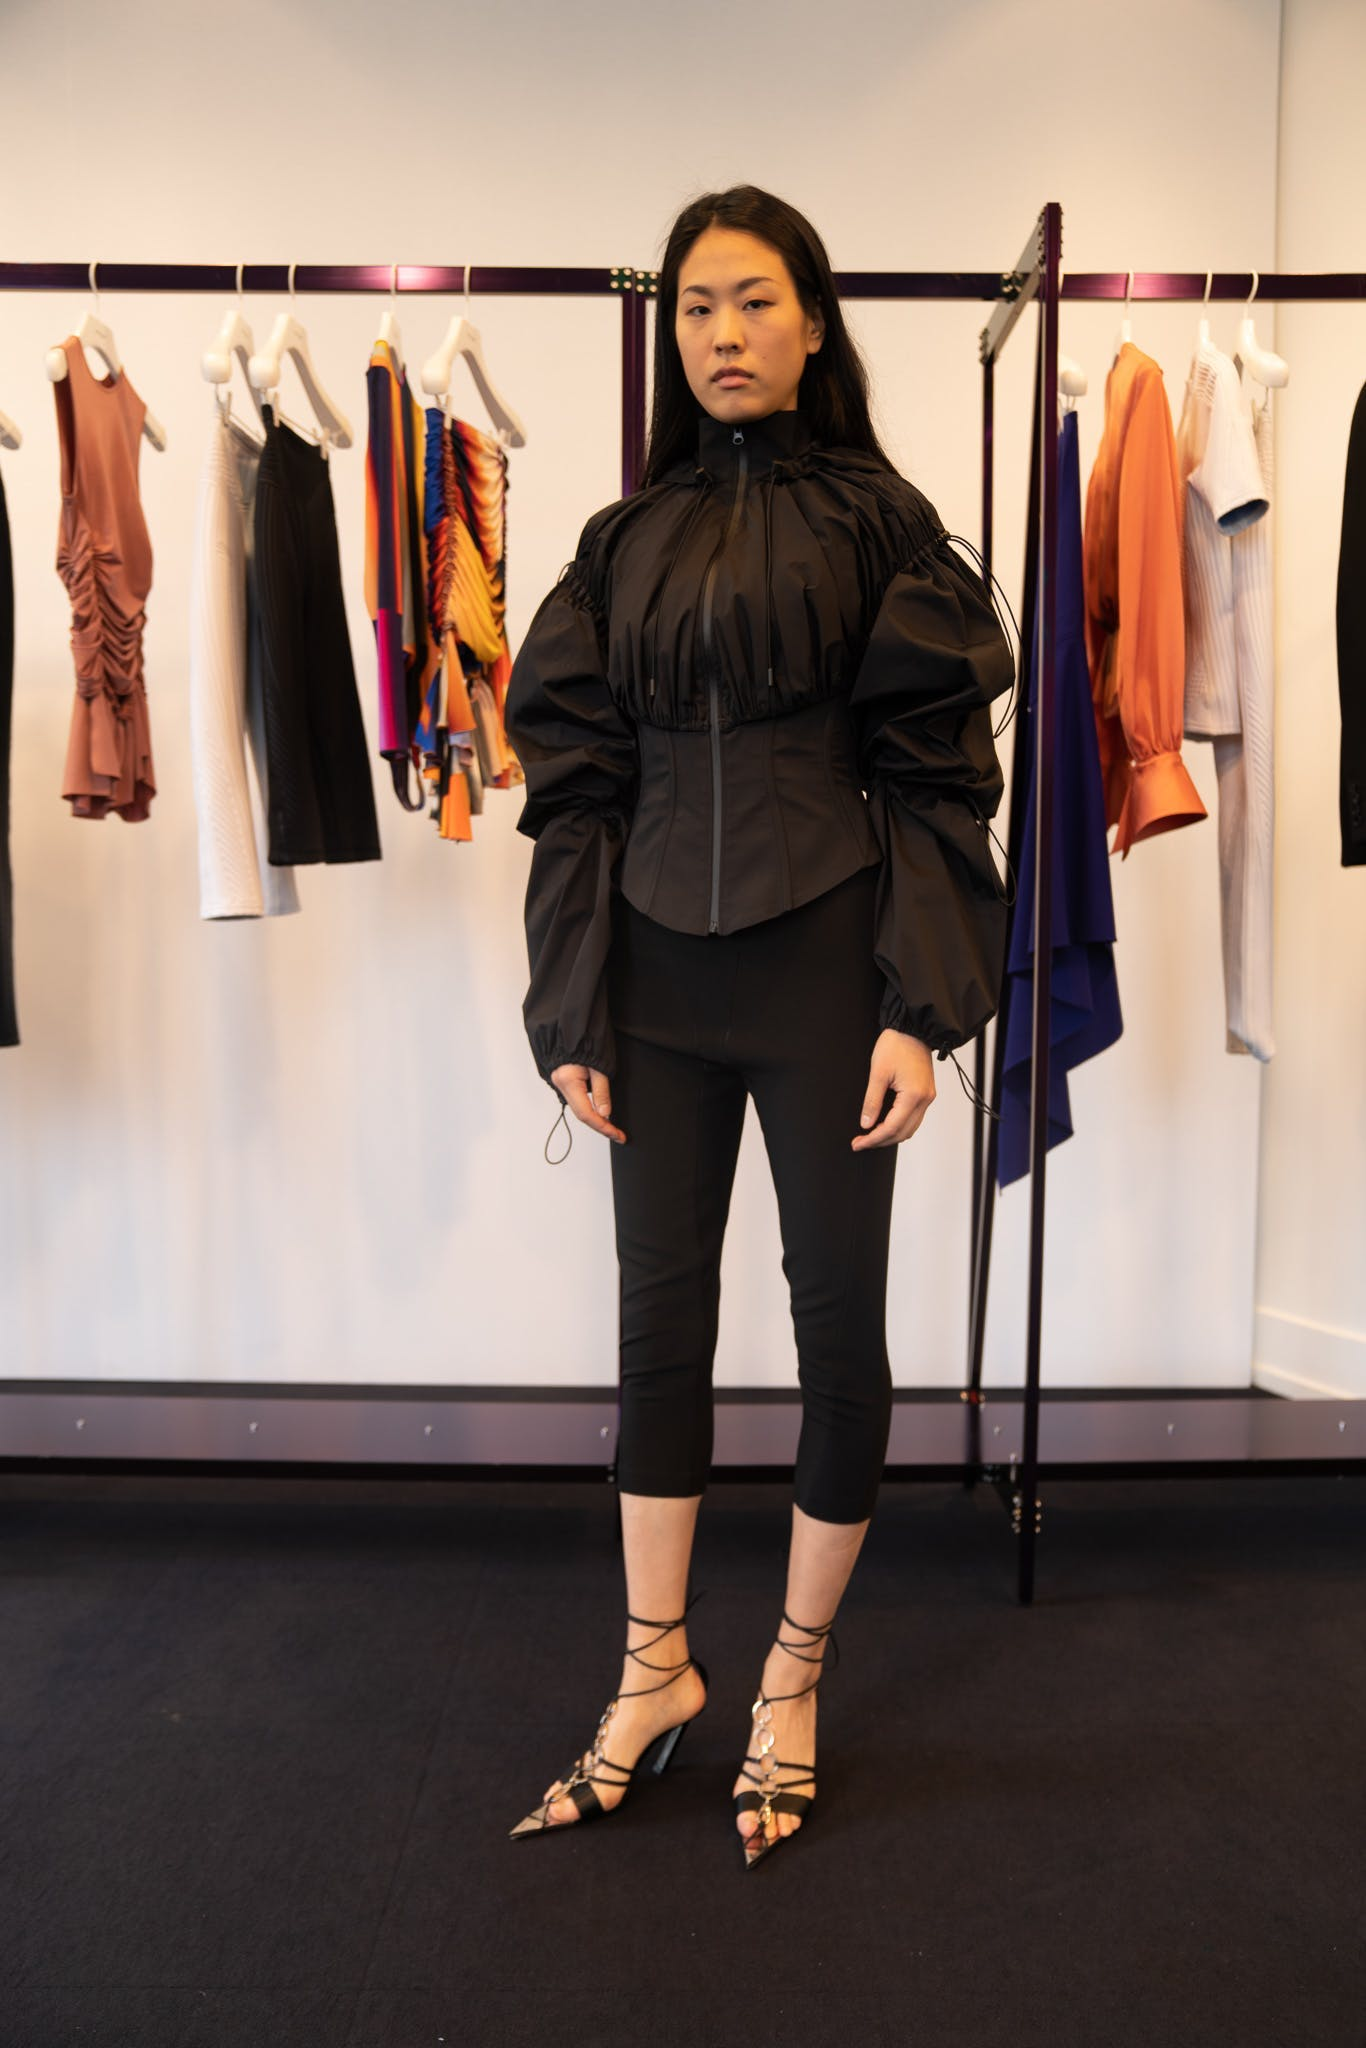 Mugler Showroom Parachute Drawstring Fullzip Jacket Three Quarter Length Leggins Tie Up Heels in Black Spring 20 RTW